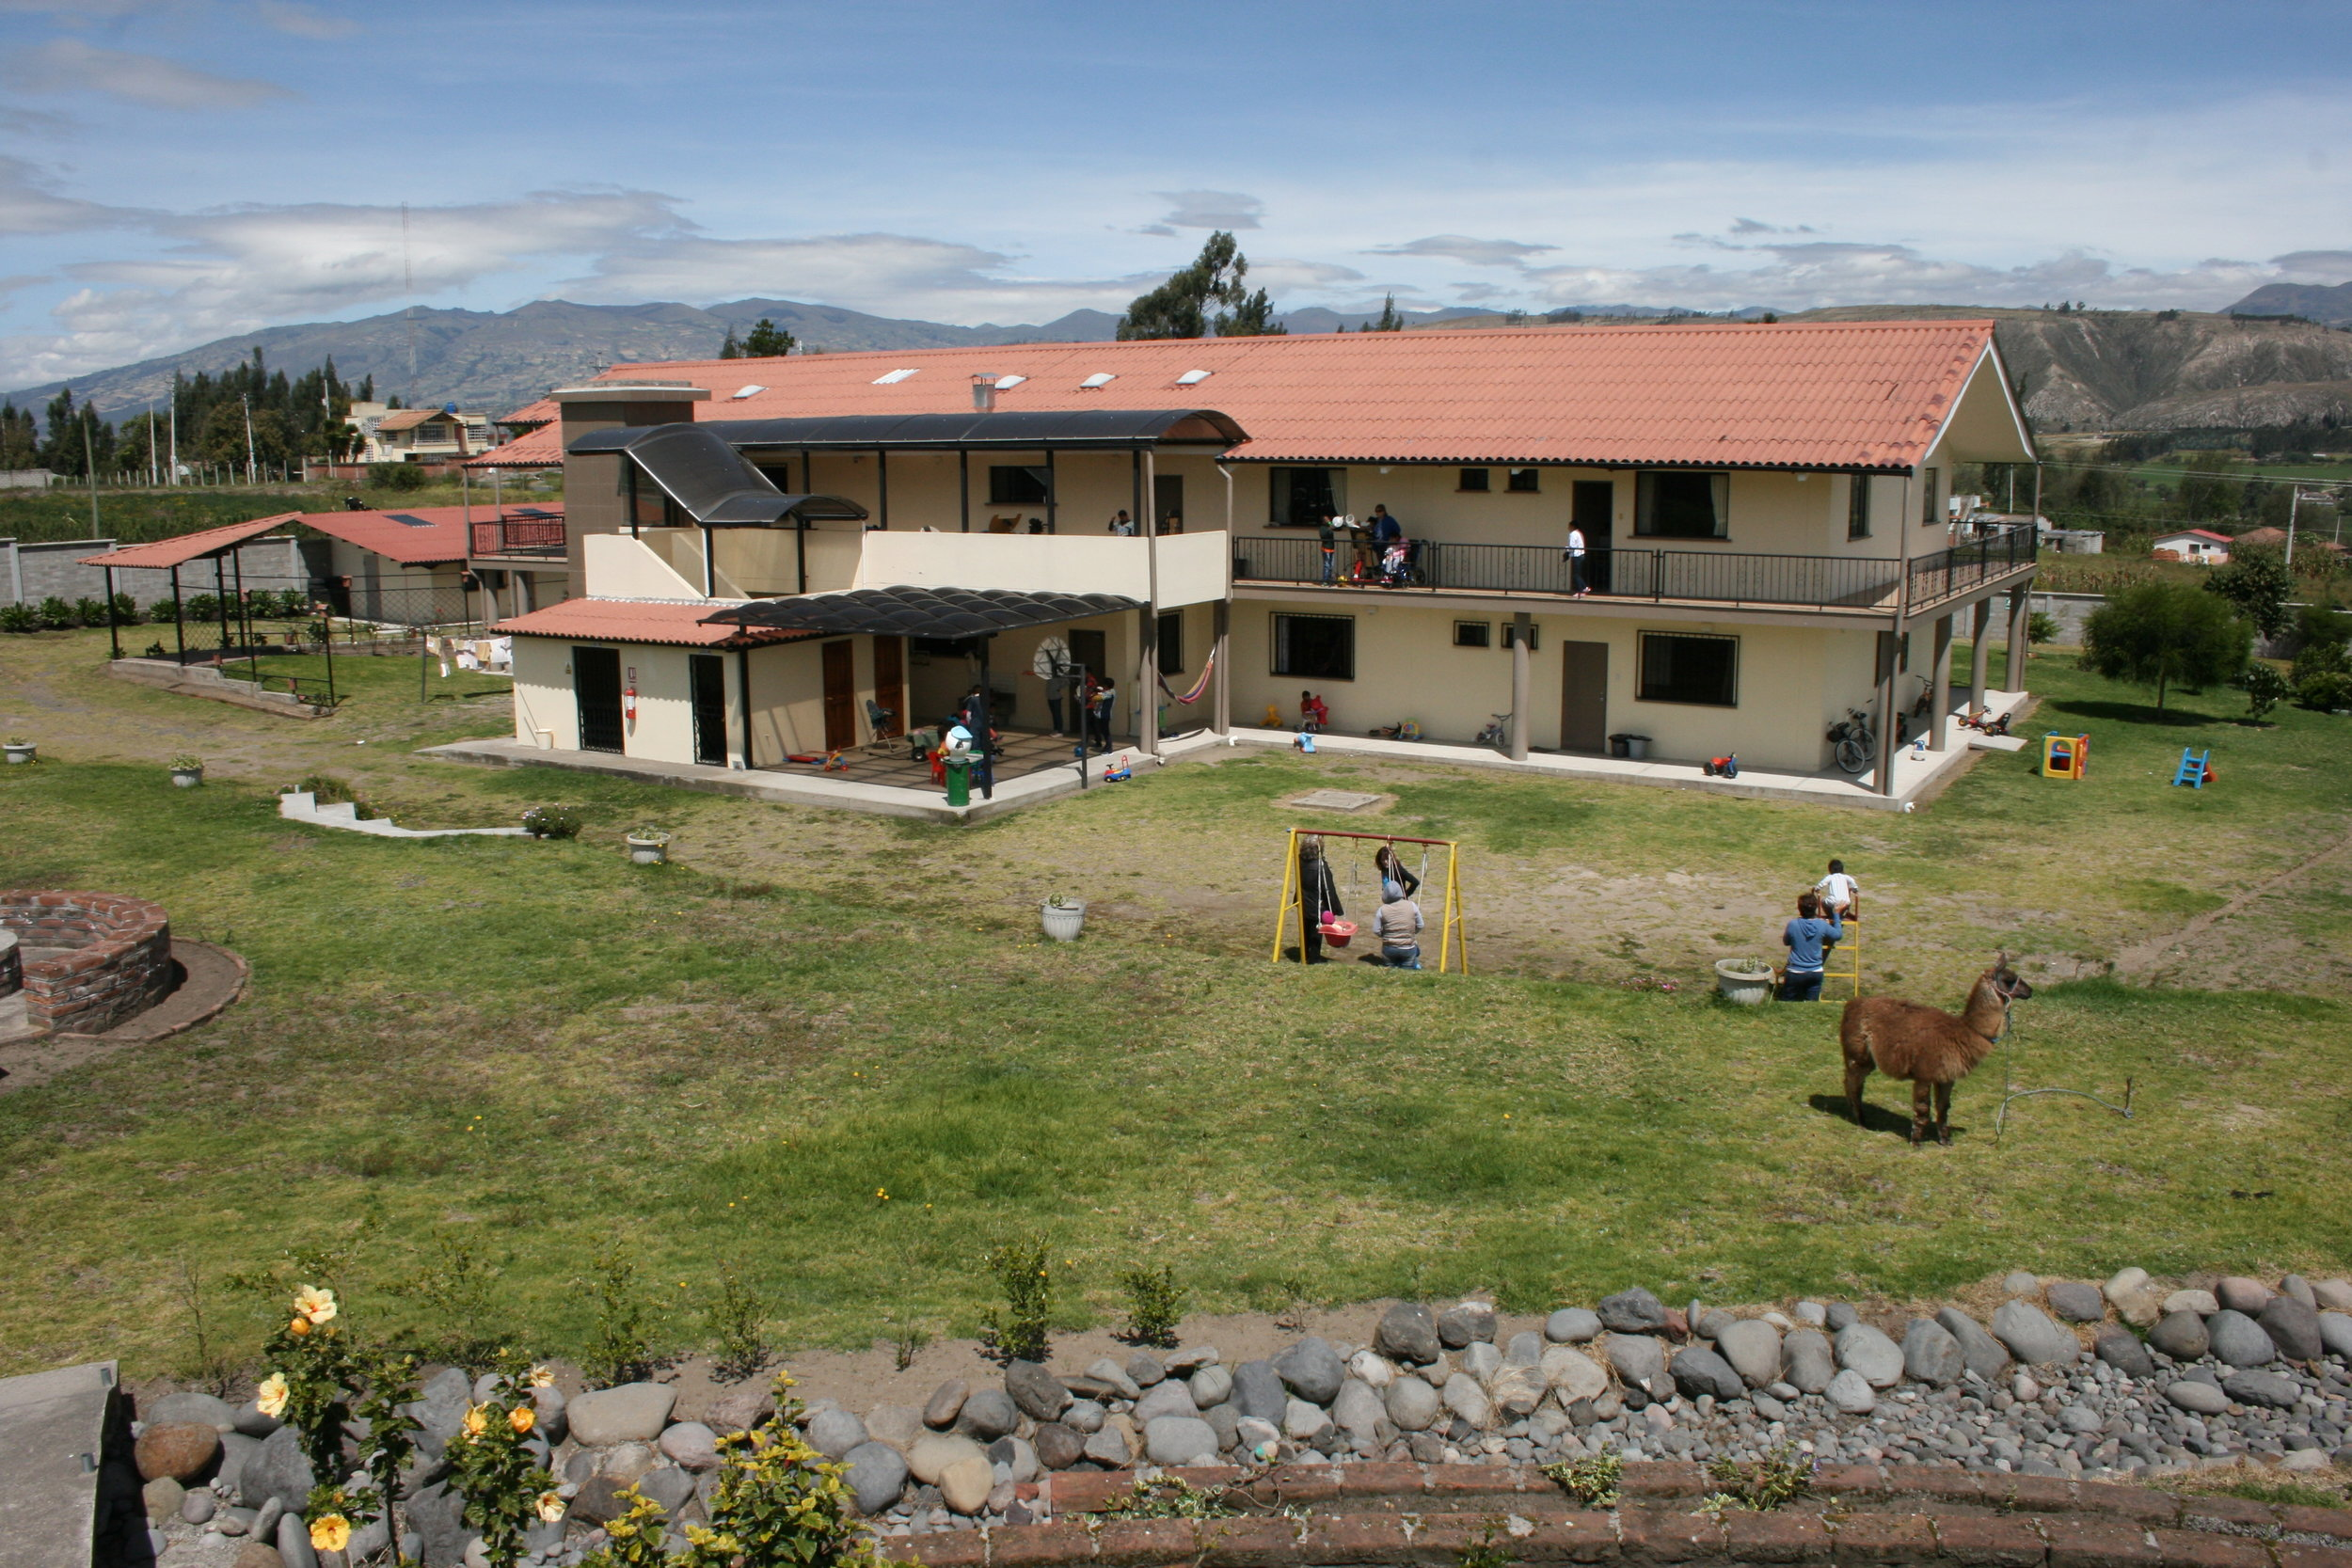 The completed 11,000 ft. home Dean designed & built in Latacunga, Ecuador